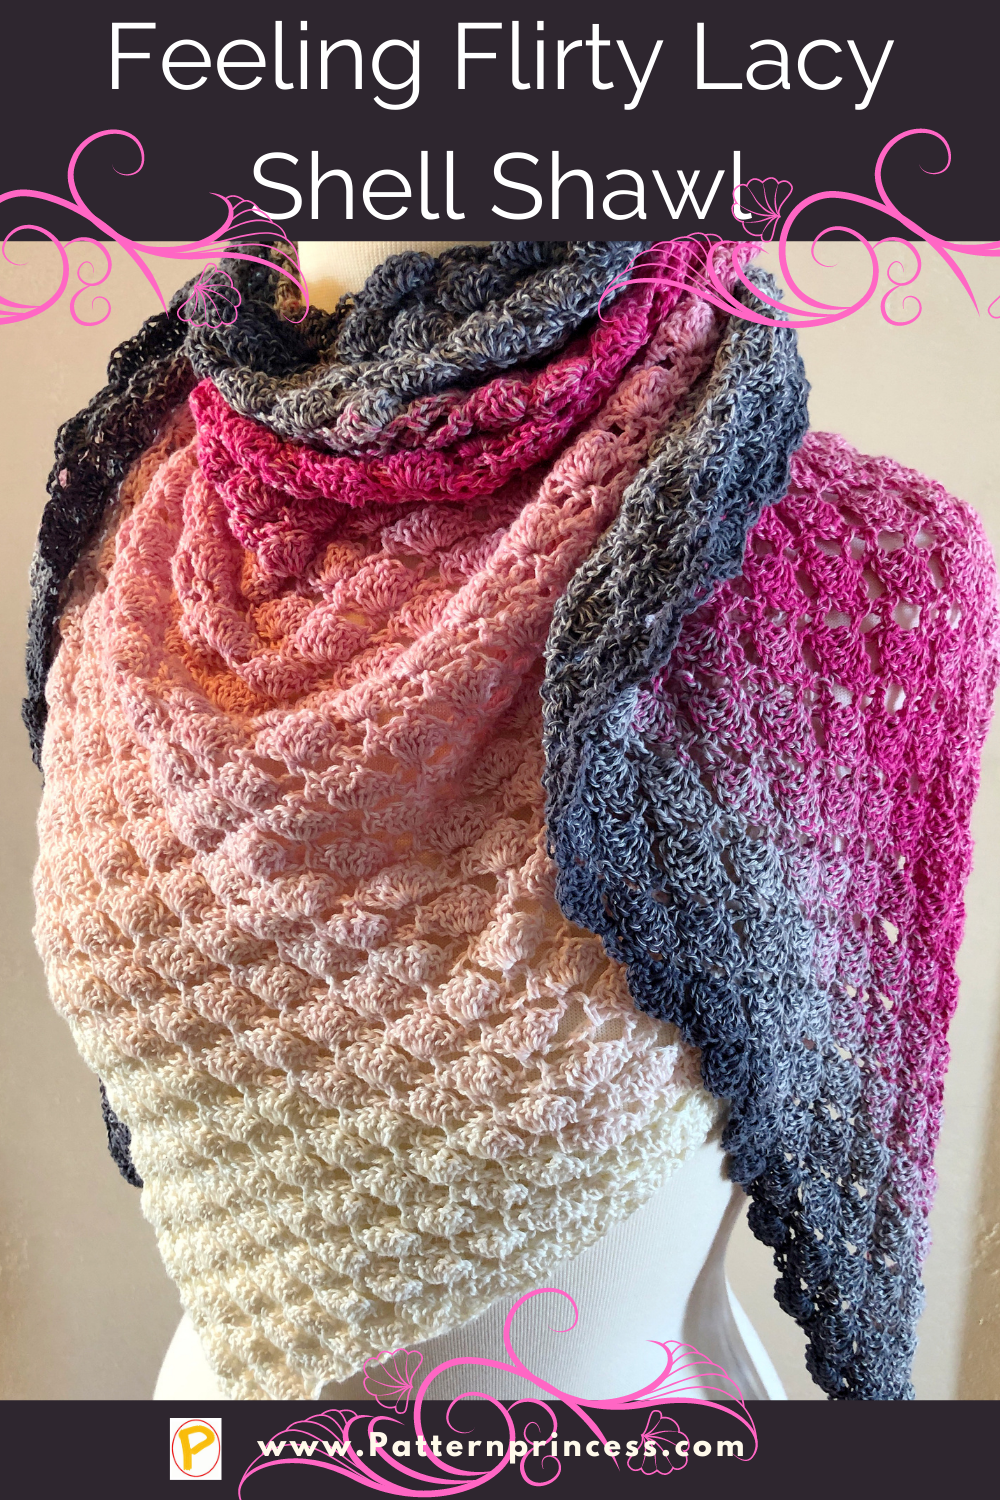 Feeling Flirty Lacy Shell Shawl